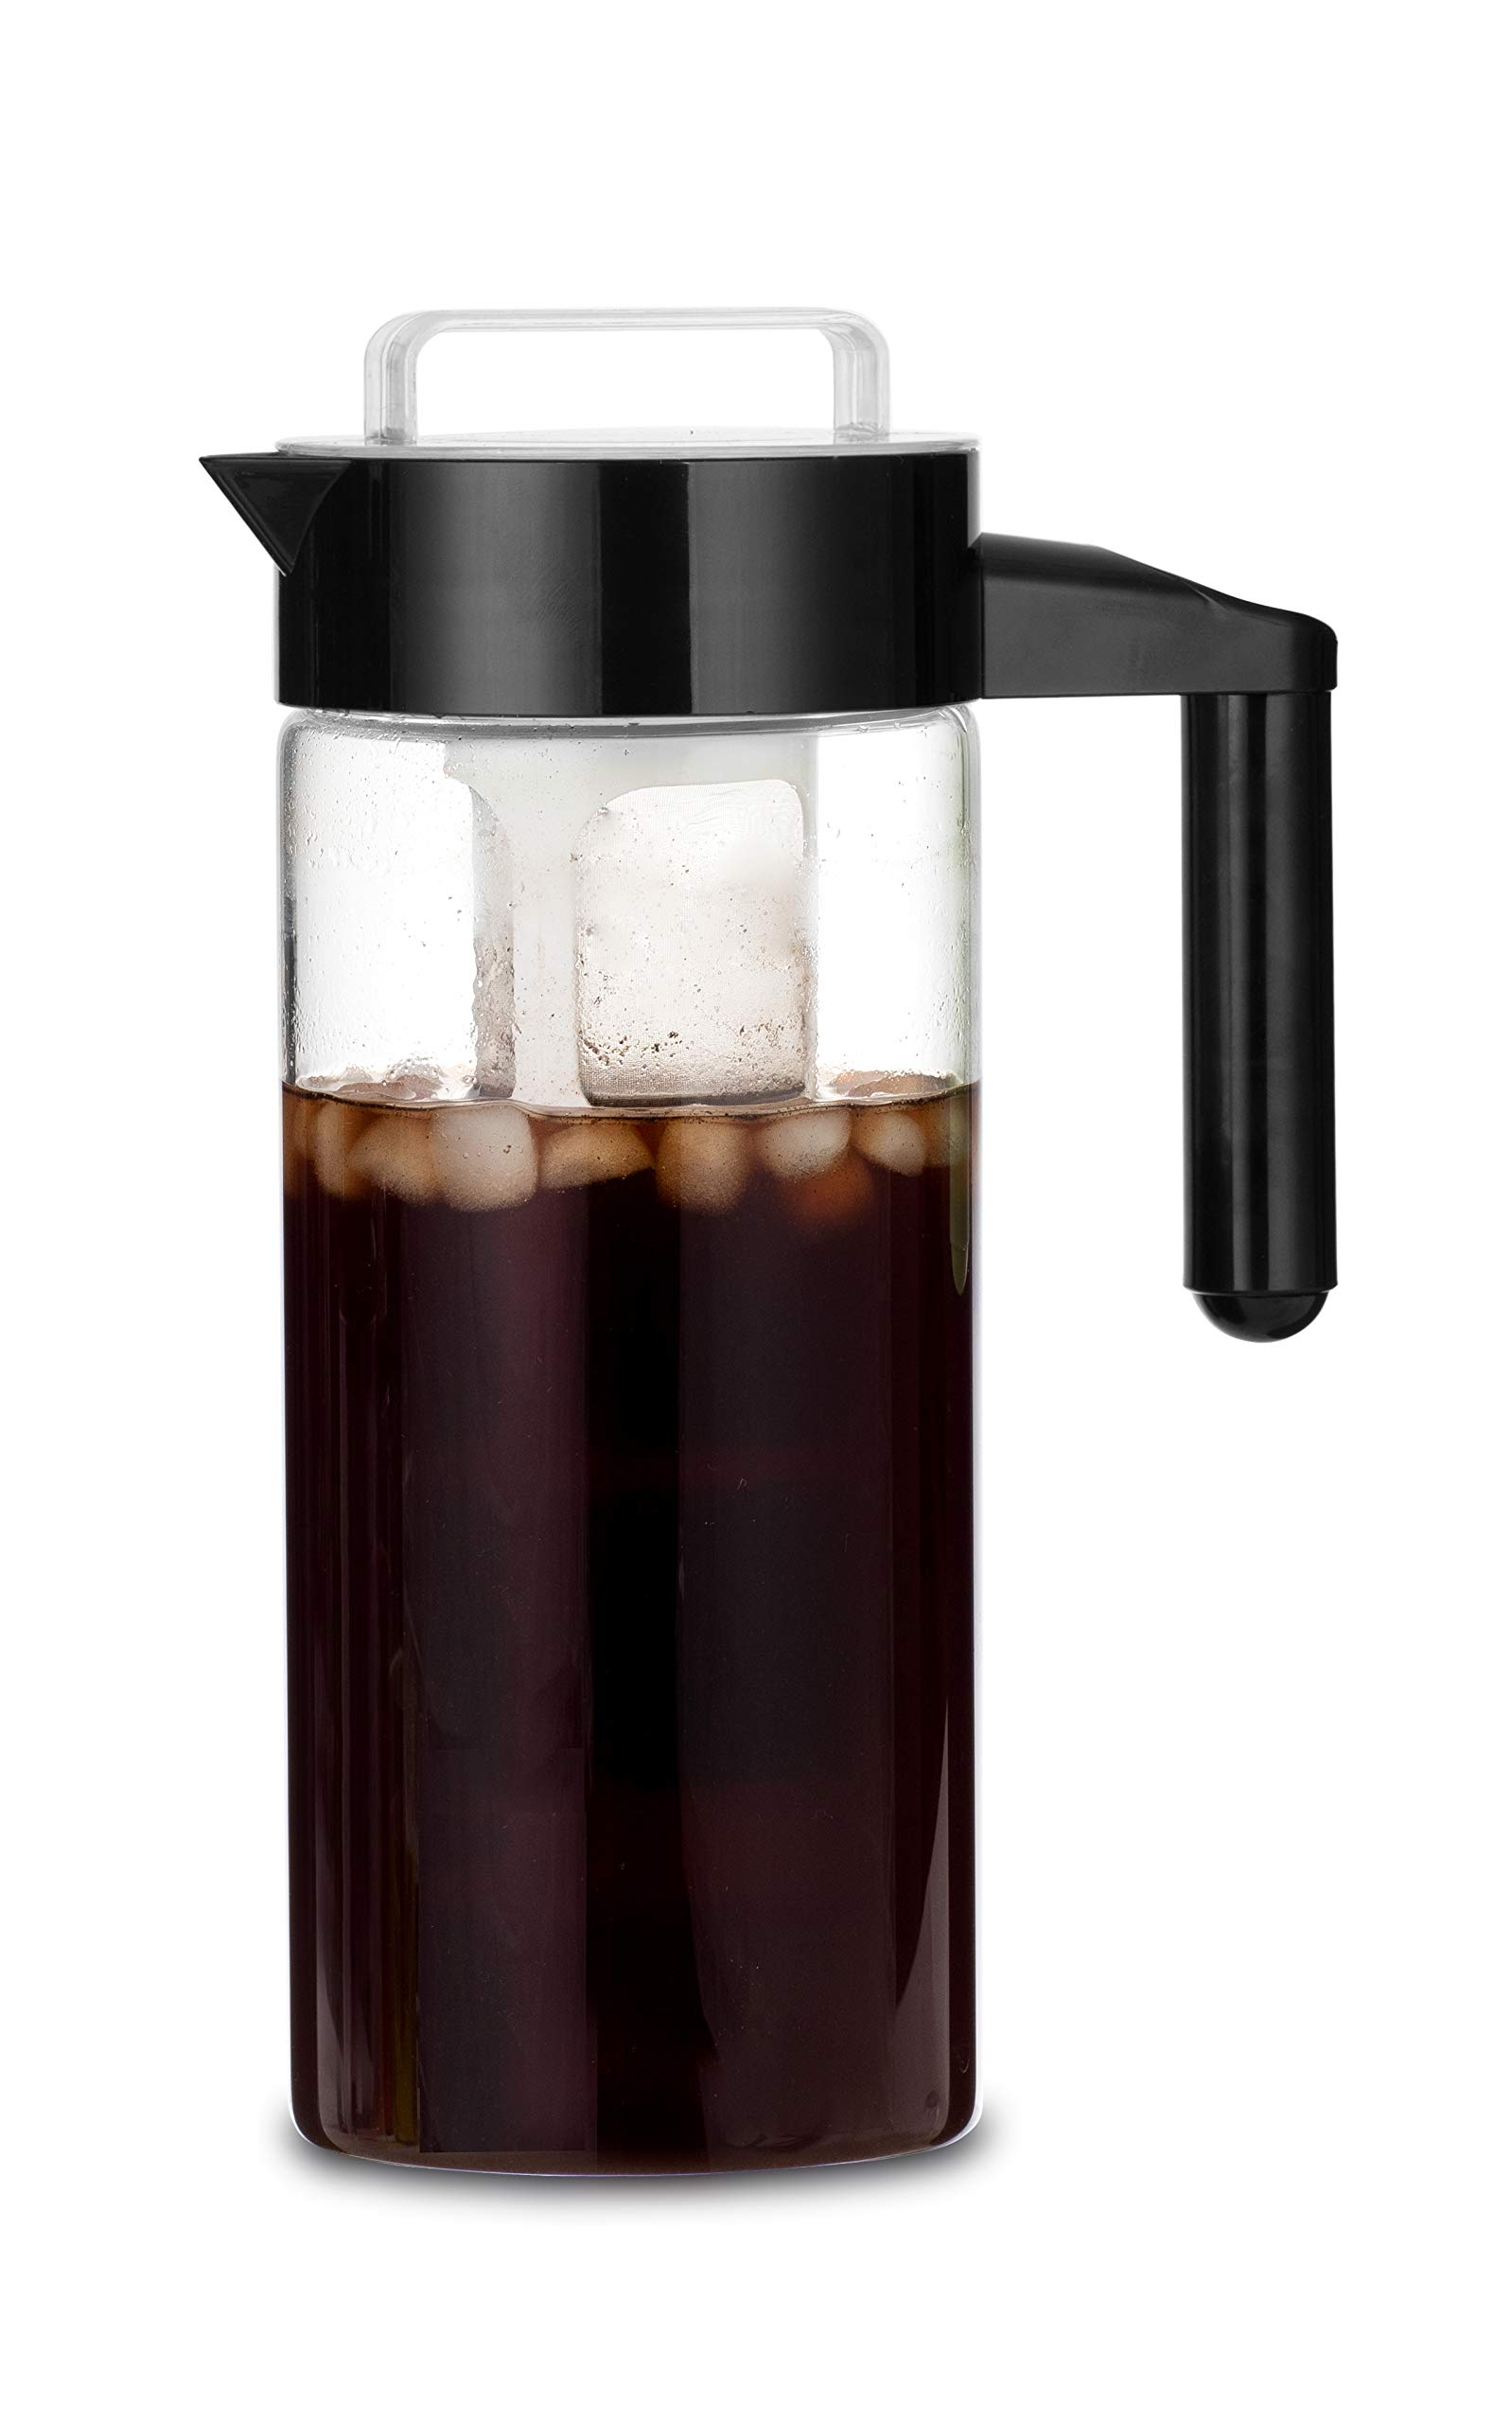 Chefoh Cold Brew Coffee Maker - Iced Tea Maker, Airtight Cold Brew Pitcher & Silicone Handle Made With Material - Reusable Infuser Filter by Chefoh